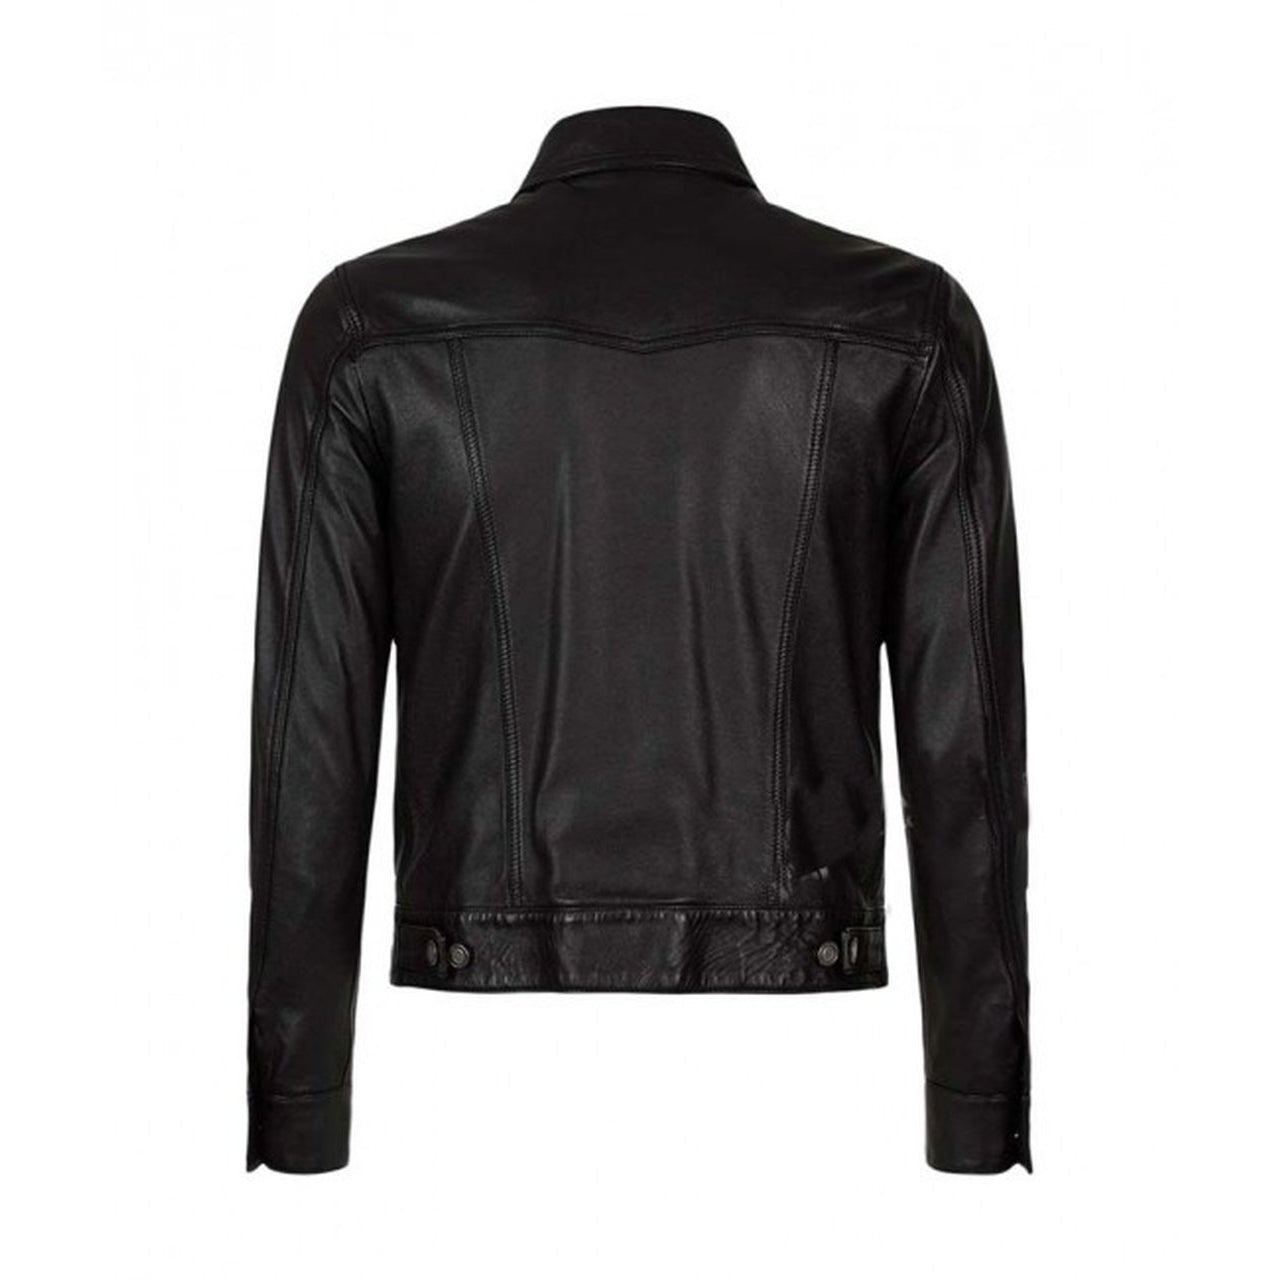 Button Up Black Leather Mens Jacket - Leather Jacket